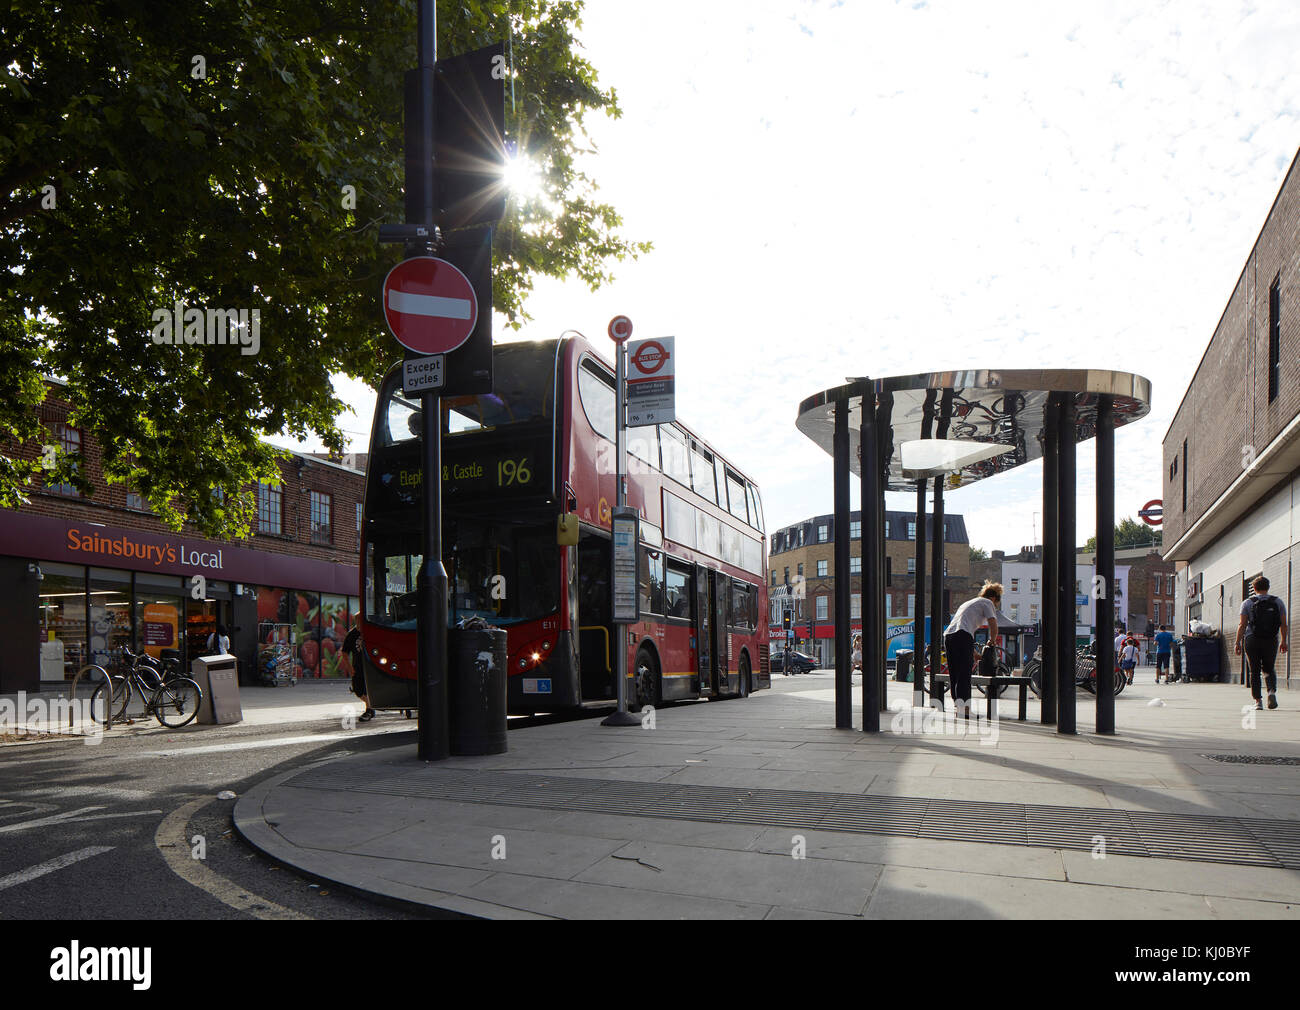 Binfield Road bus stop canopy. Stockwell Framework Masterplan, London, United Kingdom. Architect: DSDHA, 2017. - Stock Image